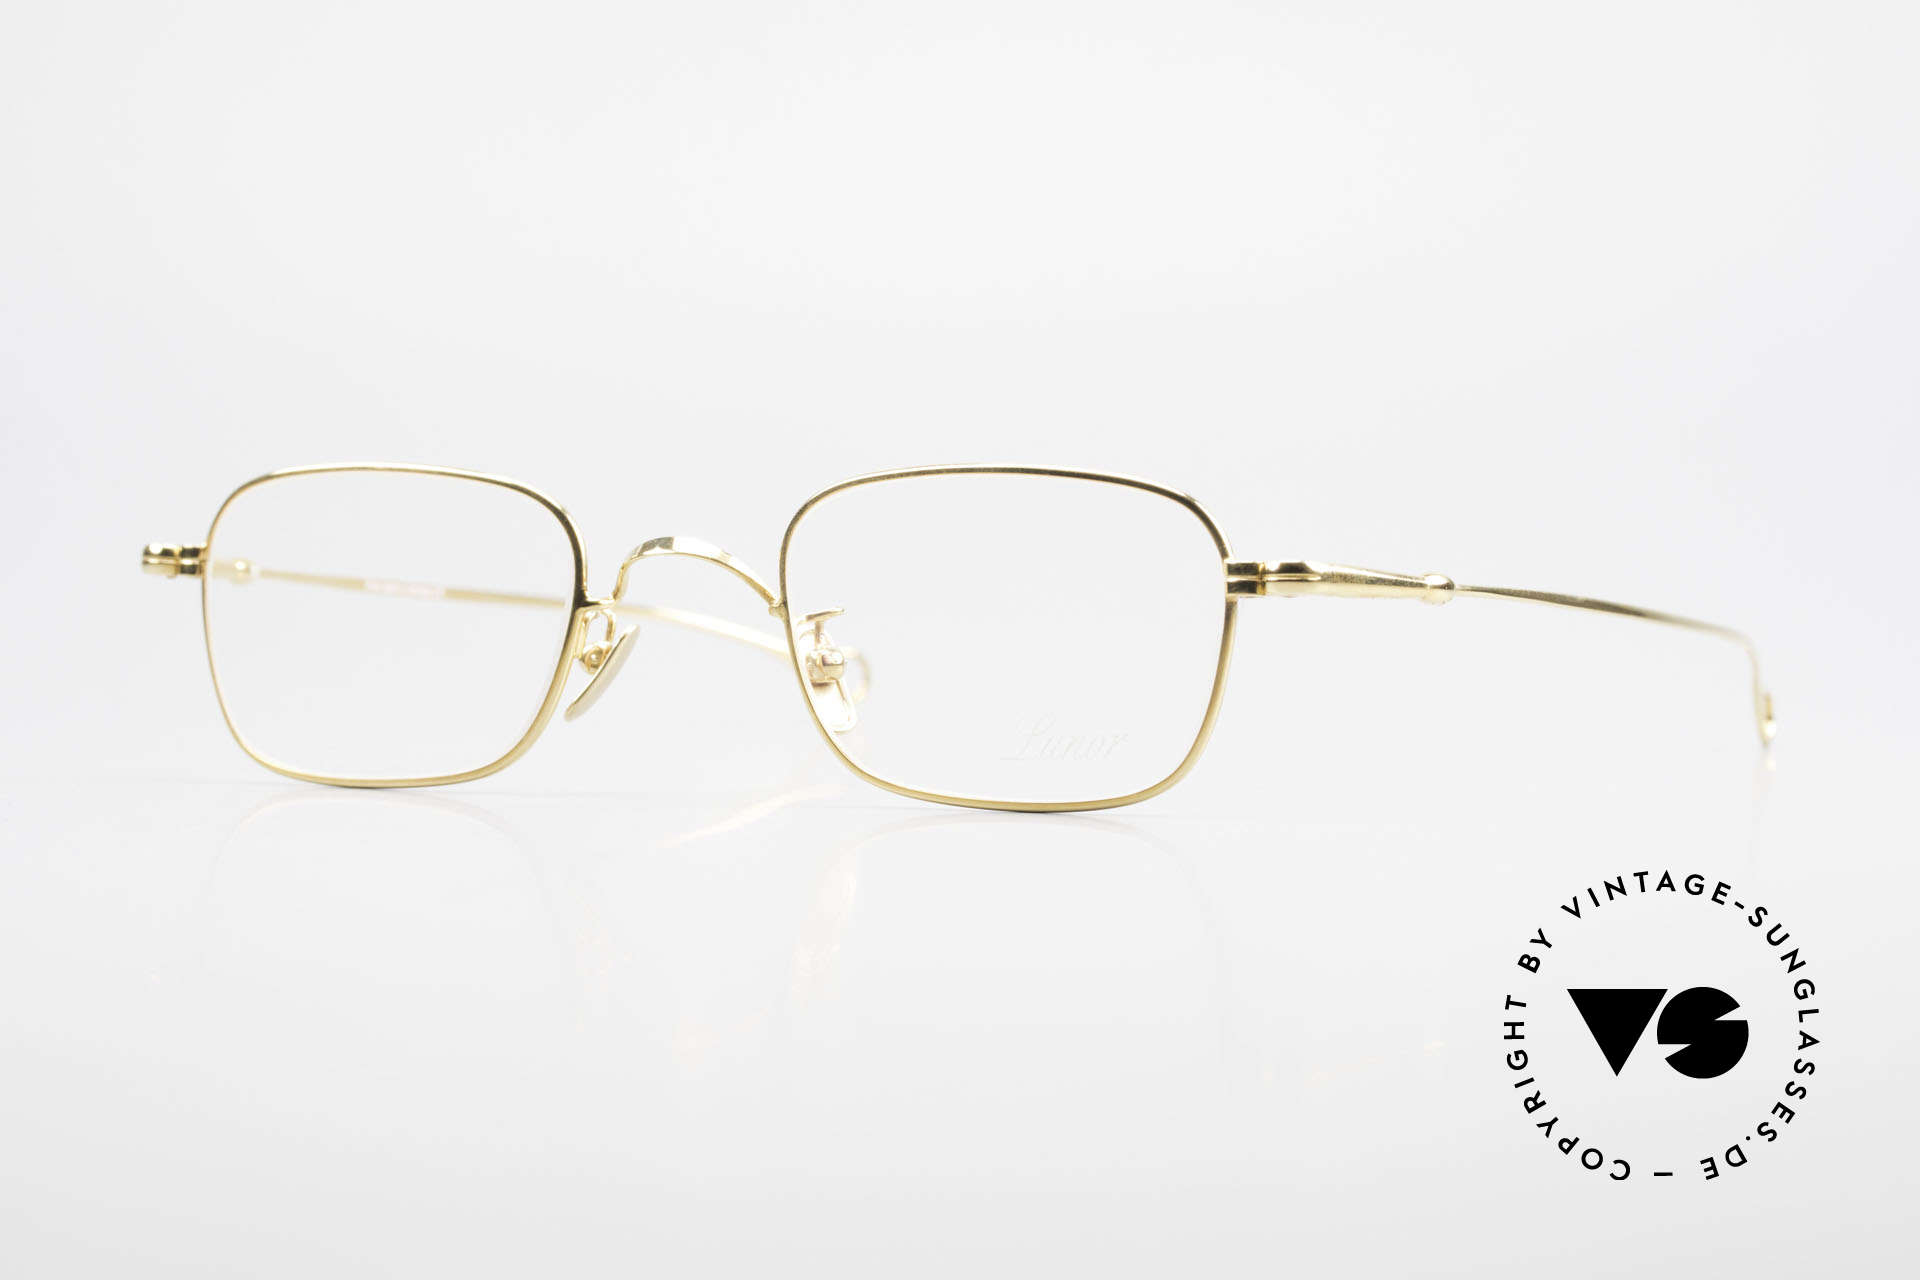 Lunor V 109 Lunor Men's Frame Gold Plated, gold-plated Lunor metal glasses in XL size 49/23, 140, Made for Men